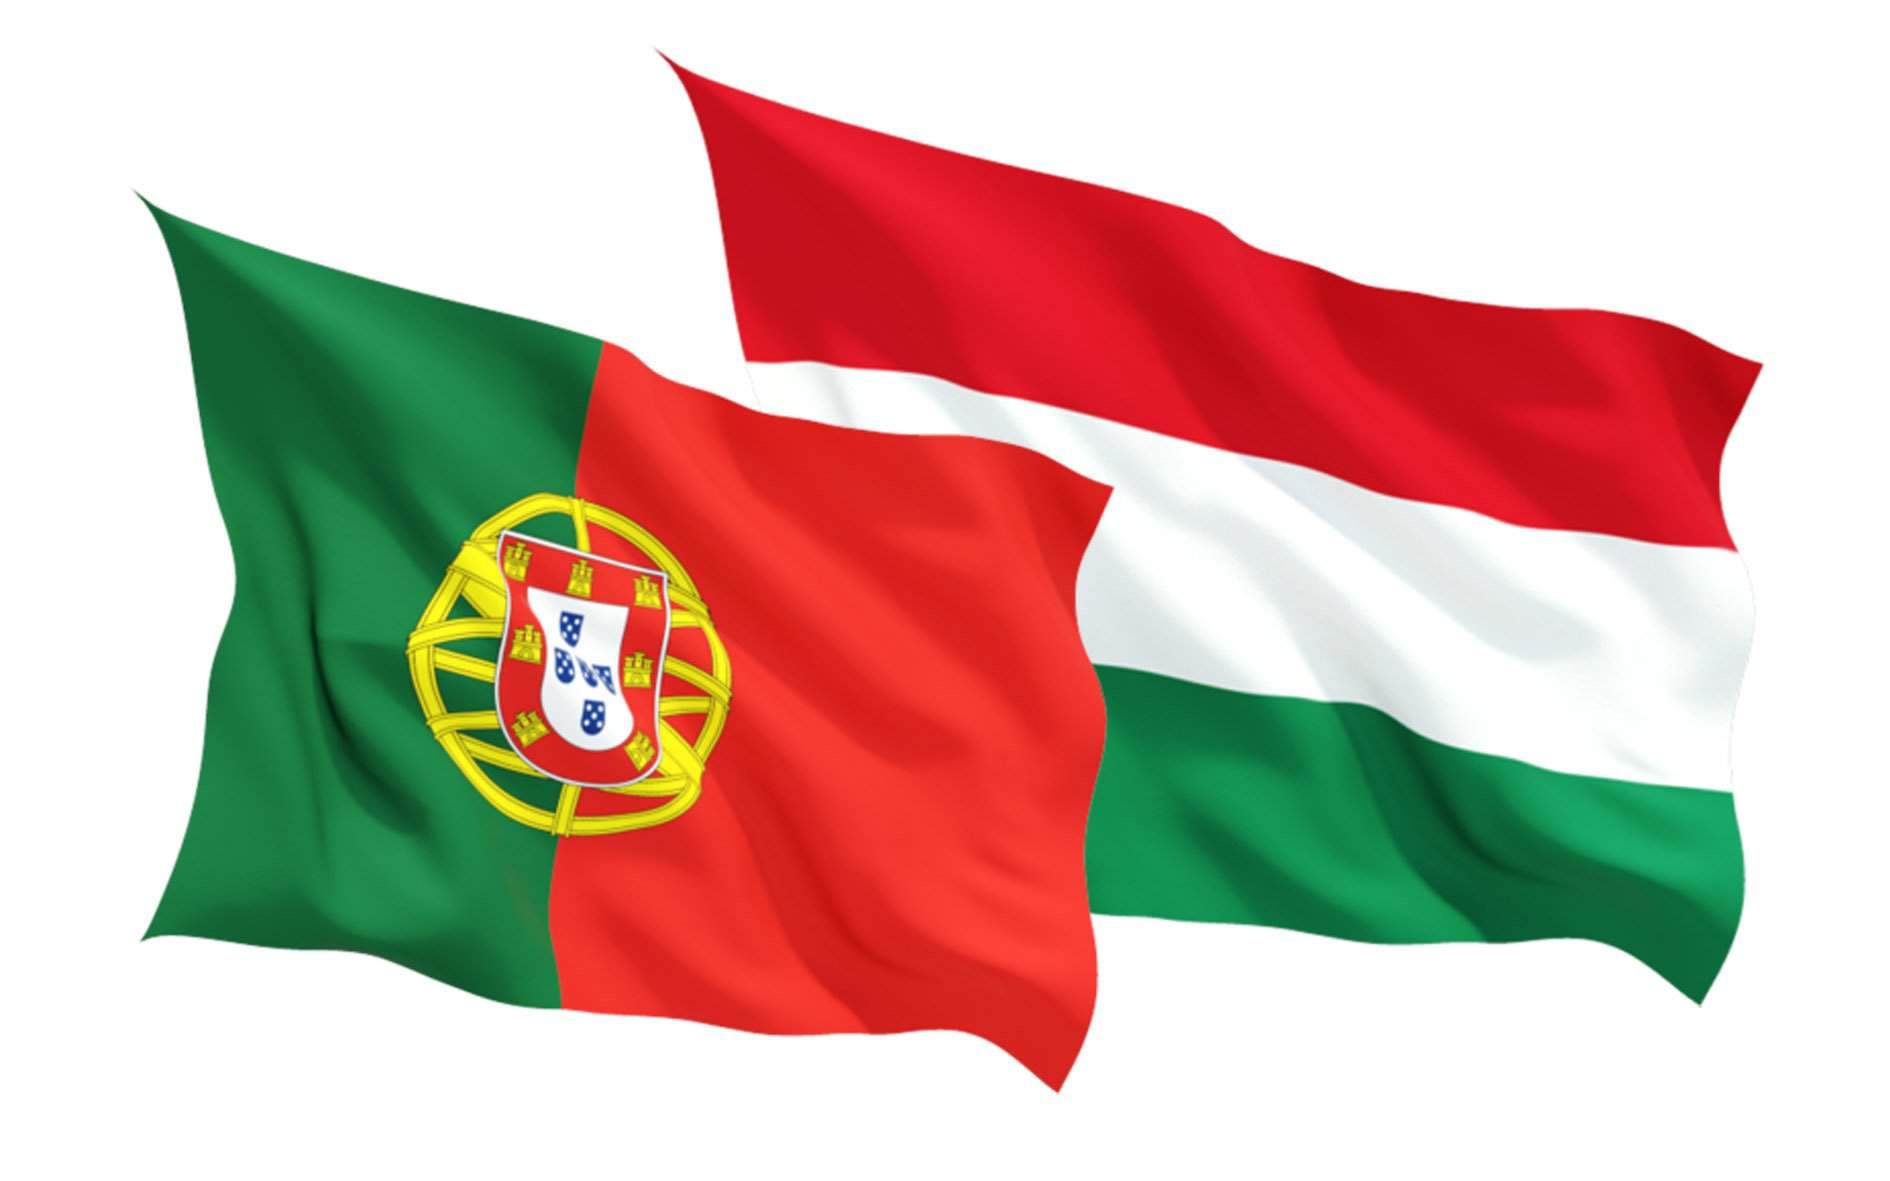 Hungary-Portugal venture capital fund set to launch